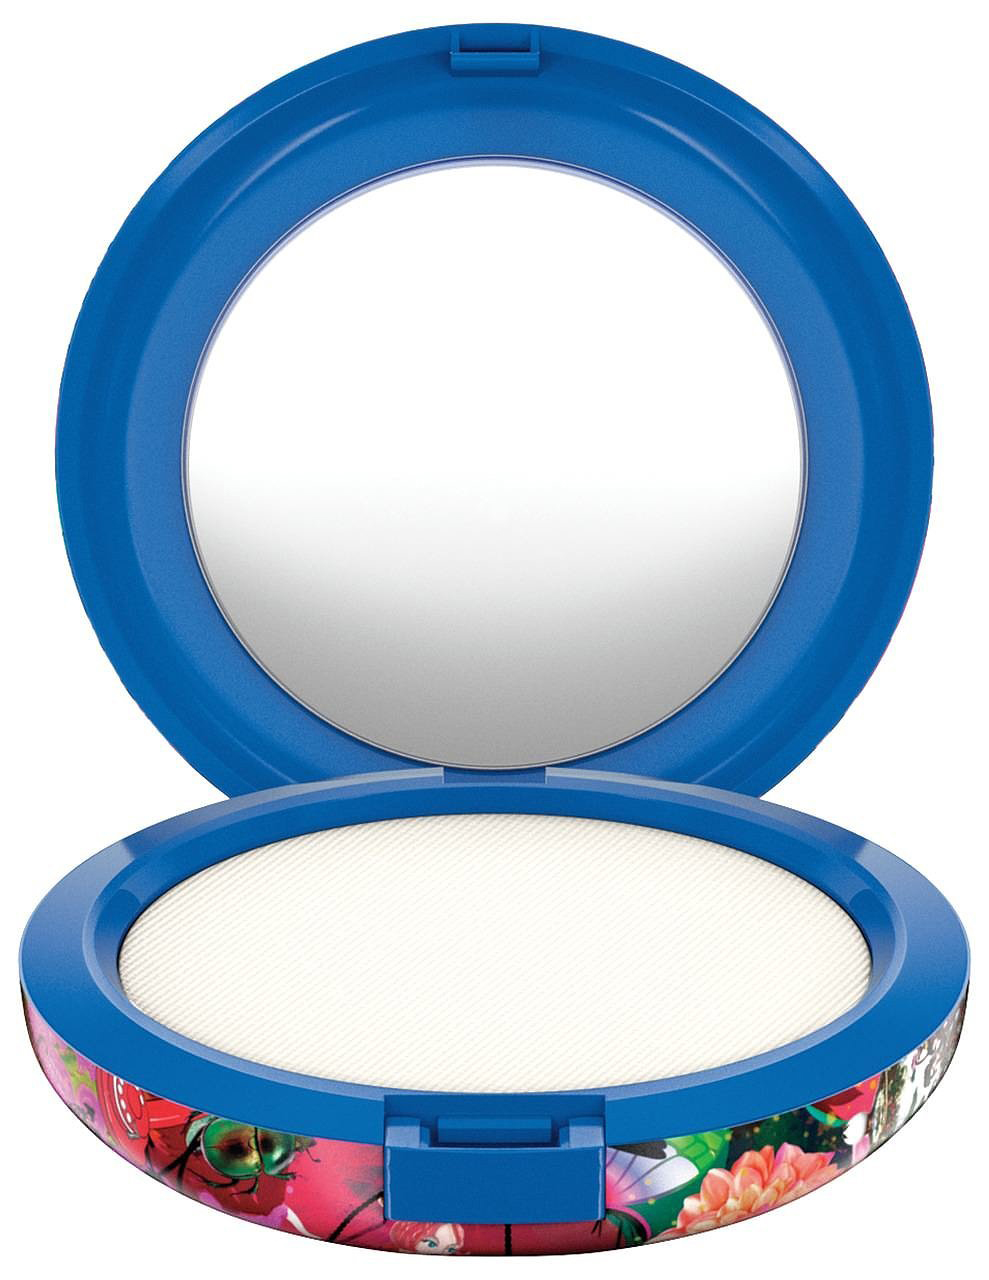 MAC-x-Chris-Chang-Prep-Prime-Transparent-Finishing-Pressed-Powder-1.jpg